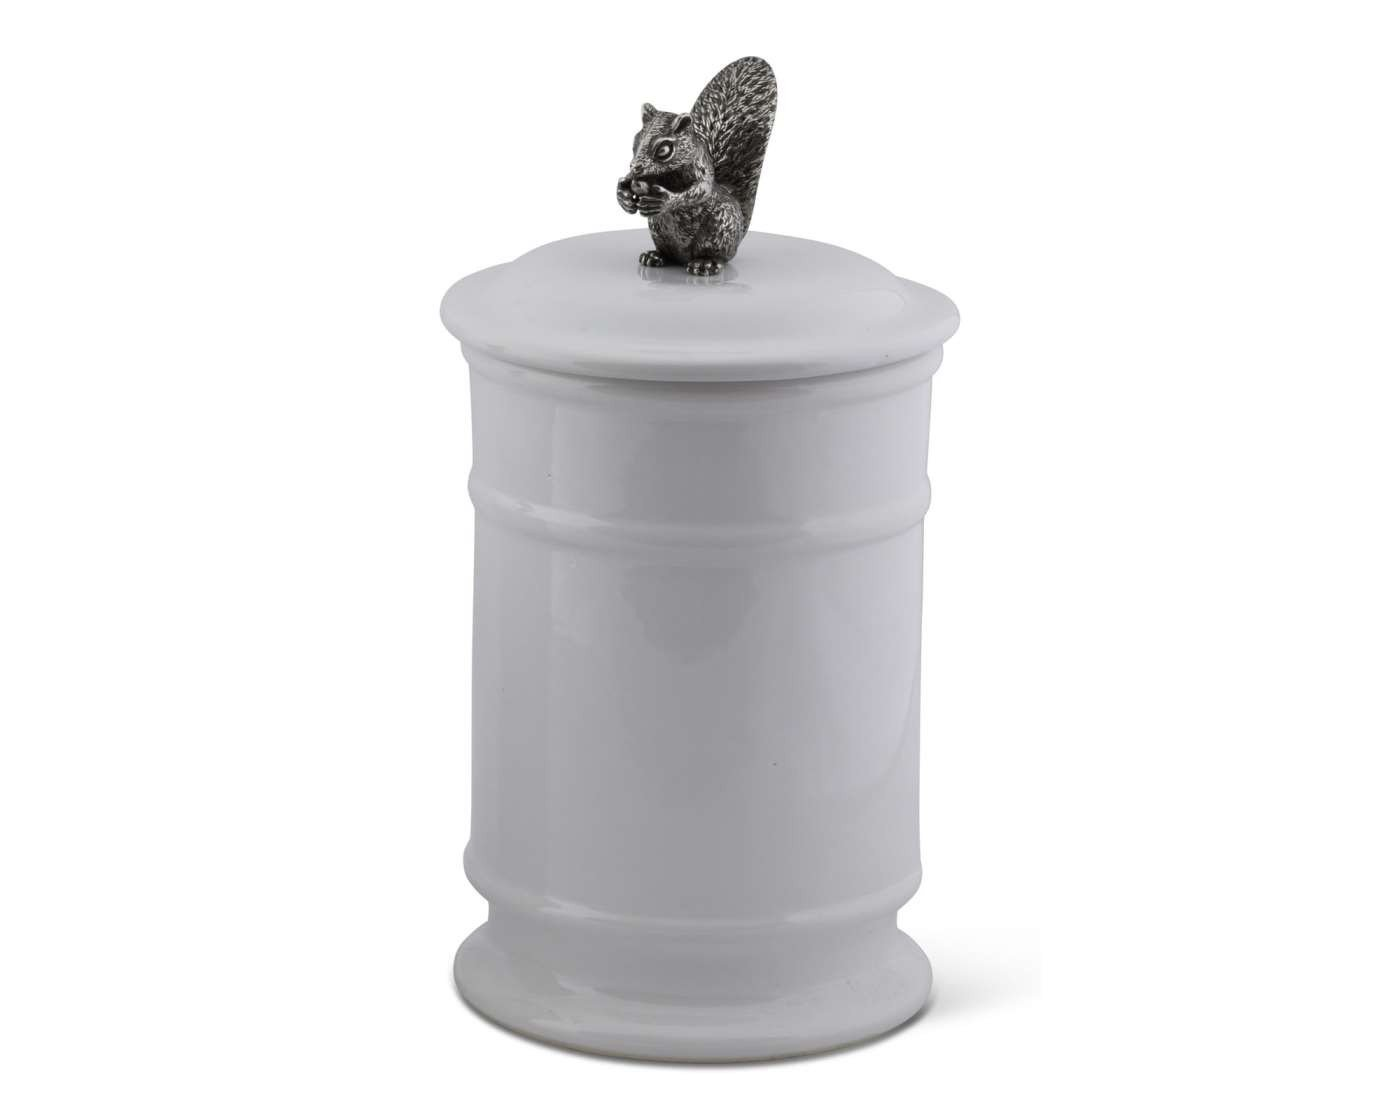 Vagabond House Stoneware Canister - Tall - Squirrel